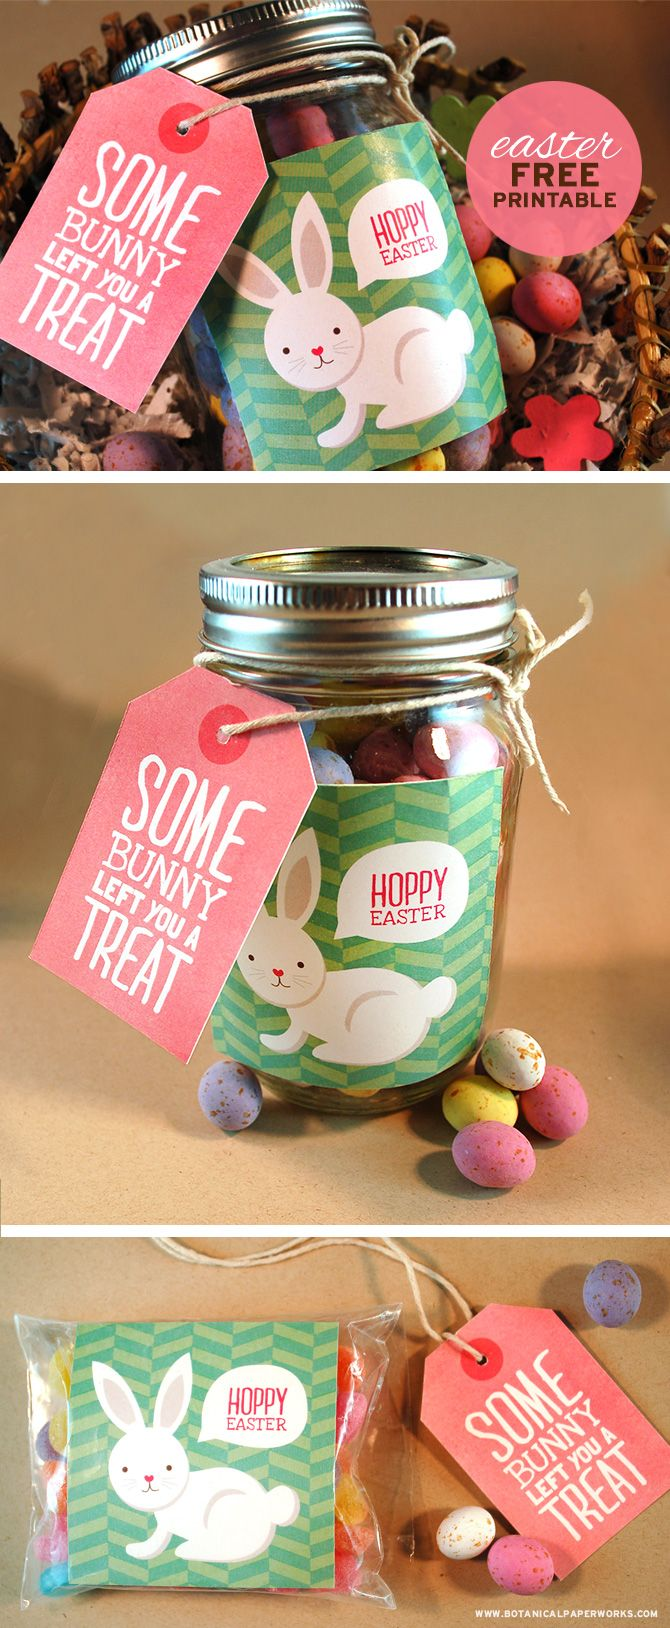 These adorable free printables are a great way to dress up your treat packages for friends and family this Easter.